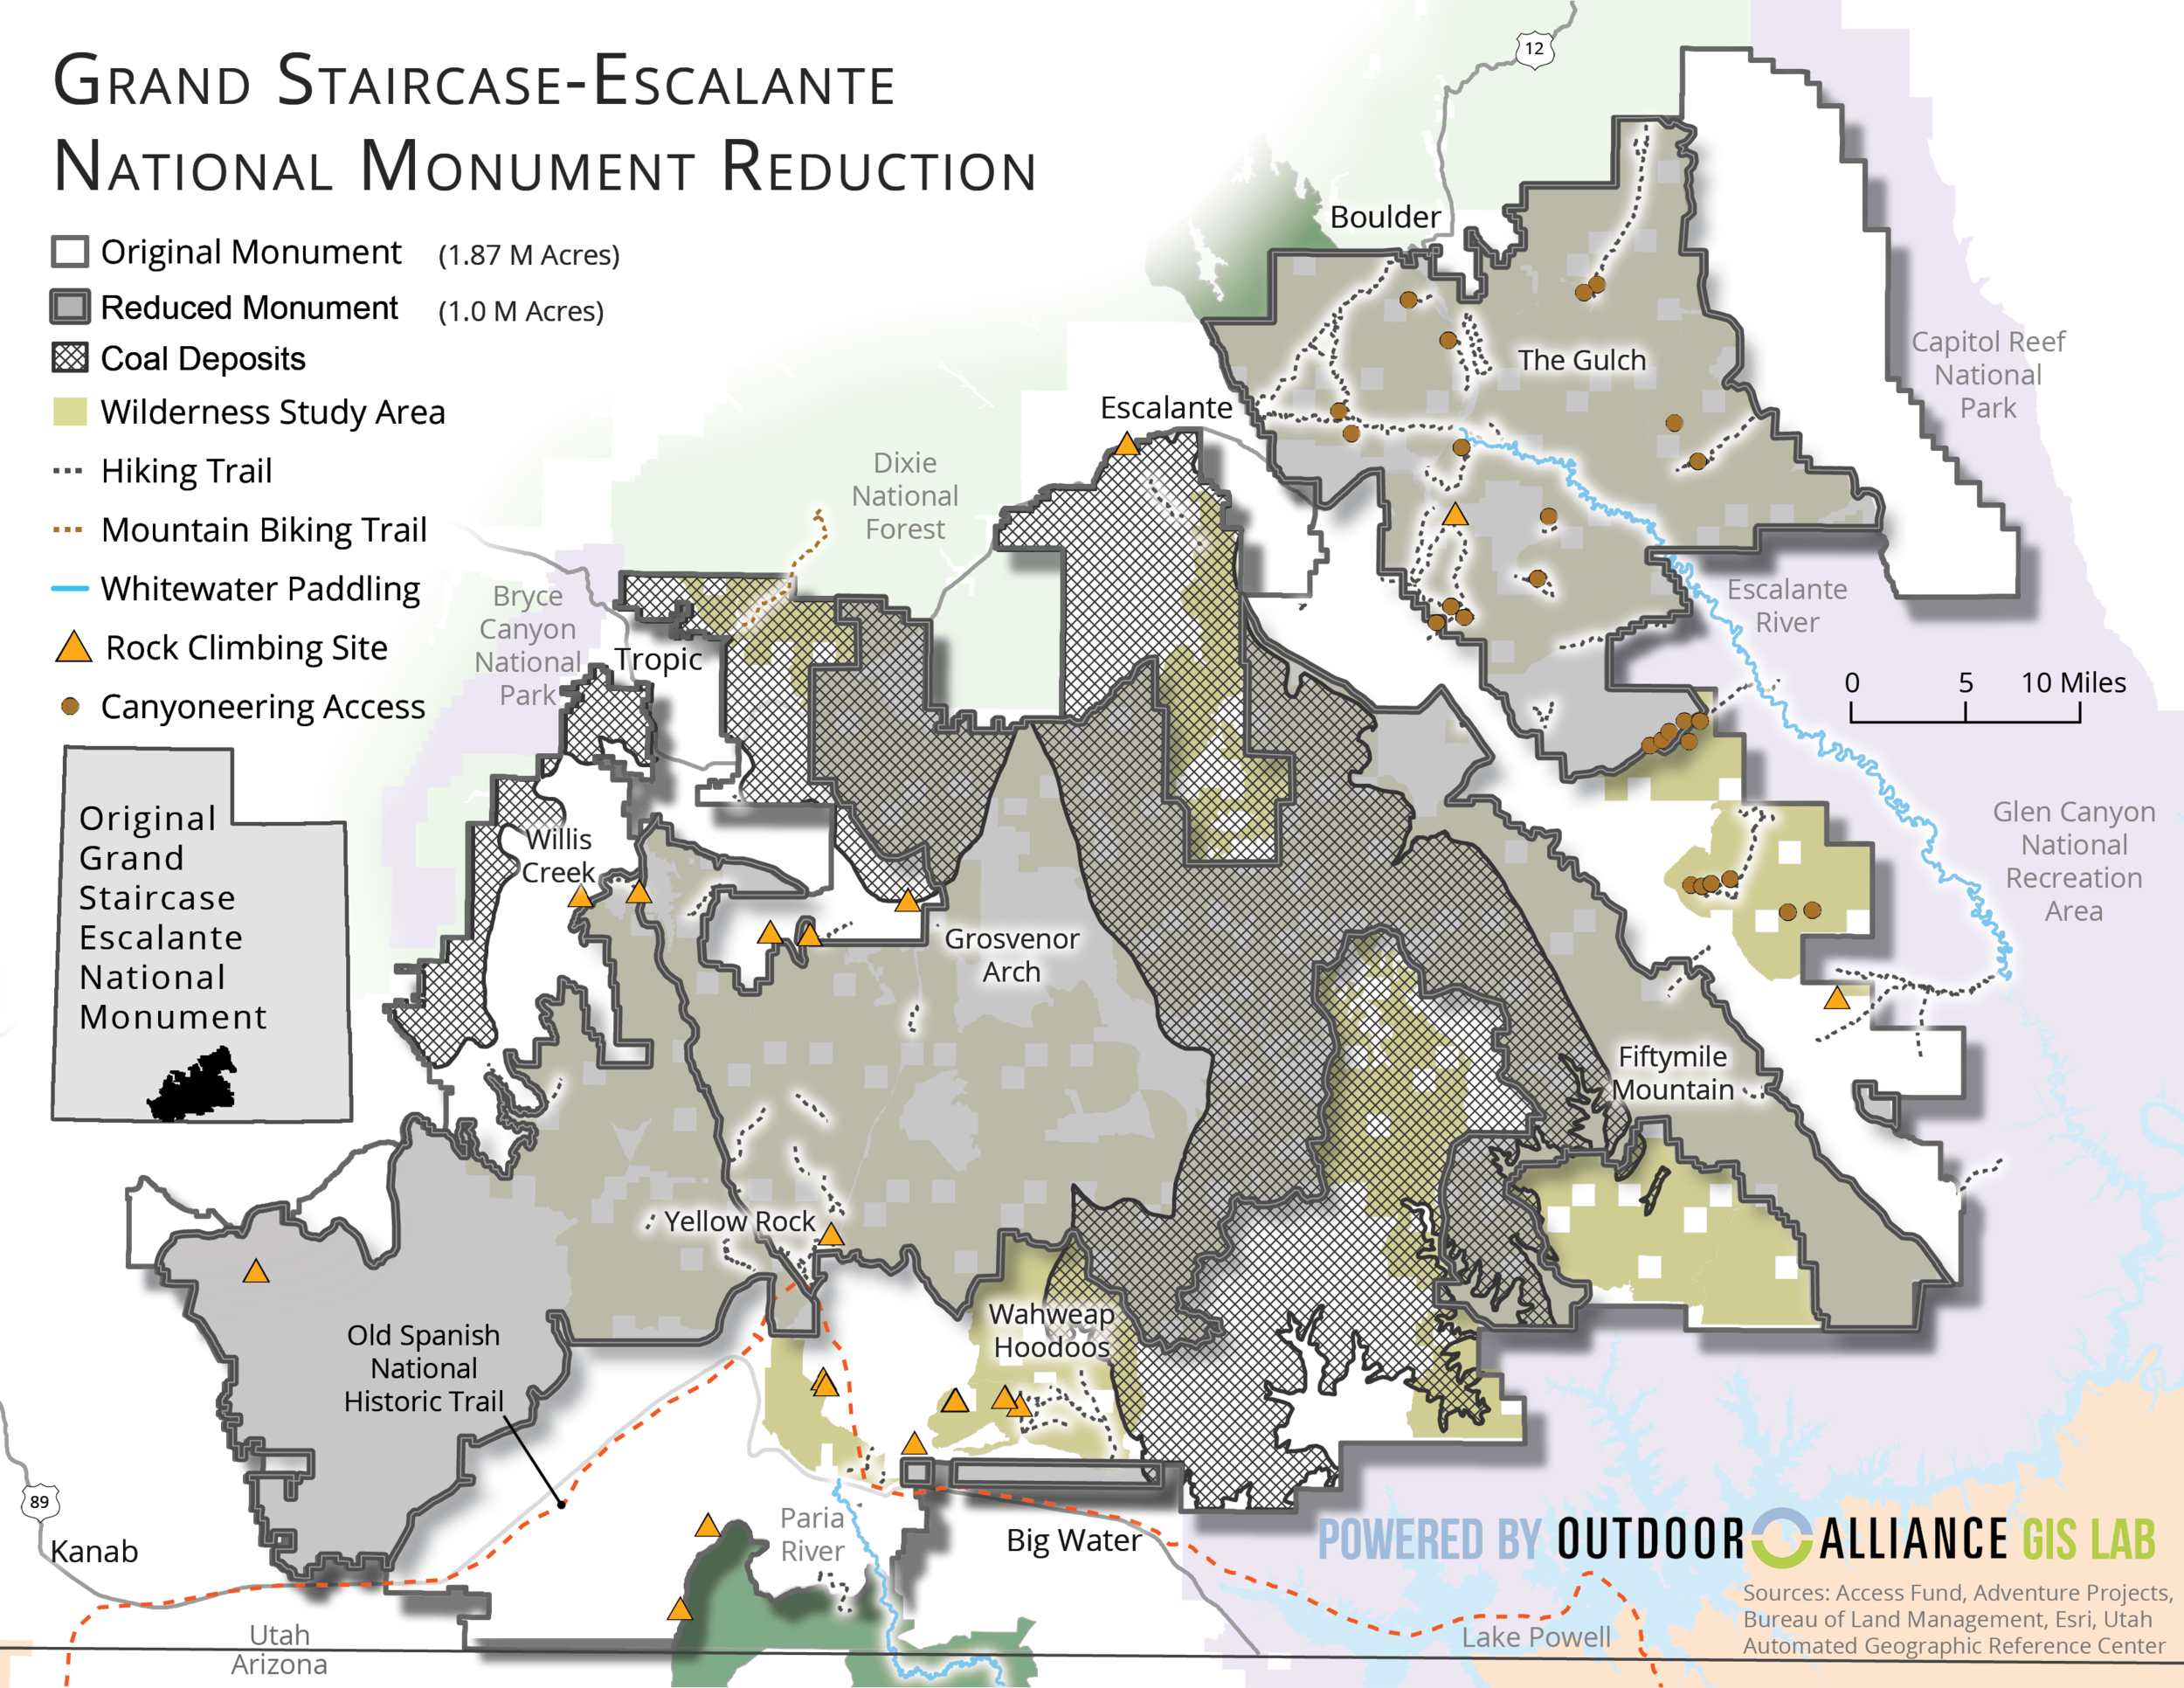 GrandStaircase-Escalante_NationalMonument_Energy_20180410.png